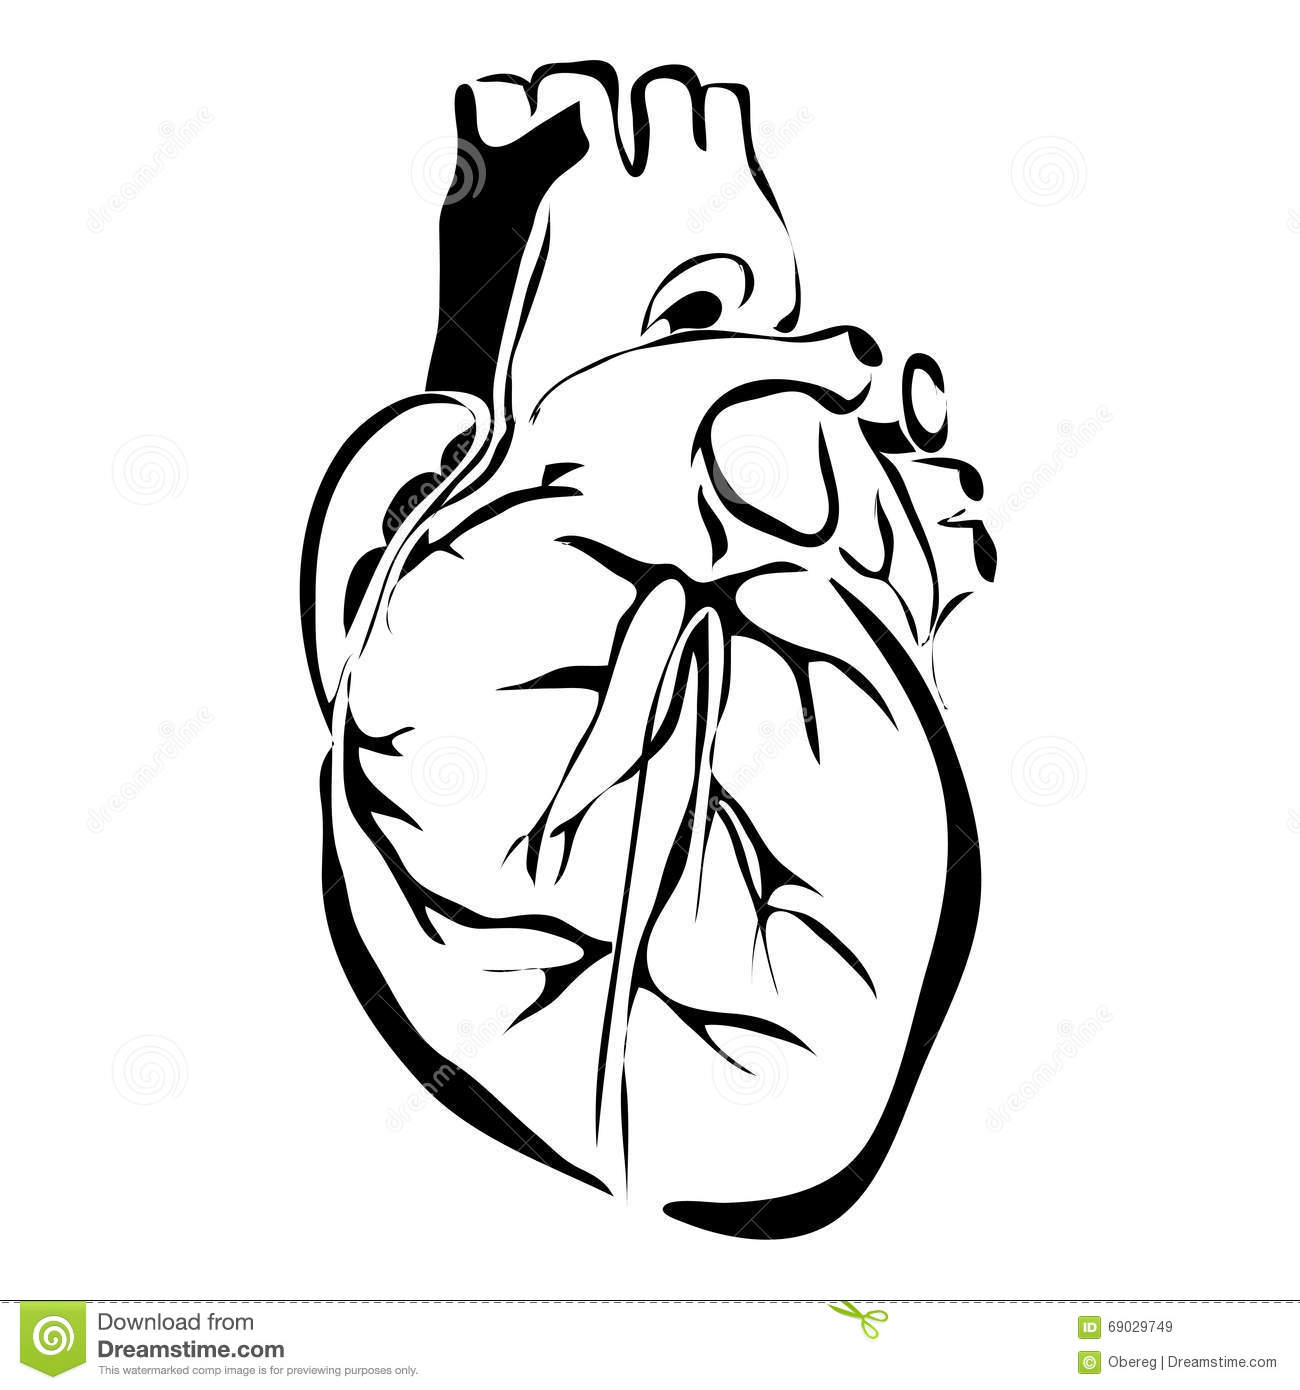 Outline heart human internal organs stock vector illustration of outline heart human internal organs ccuart Gallery